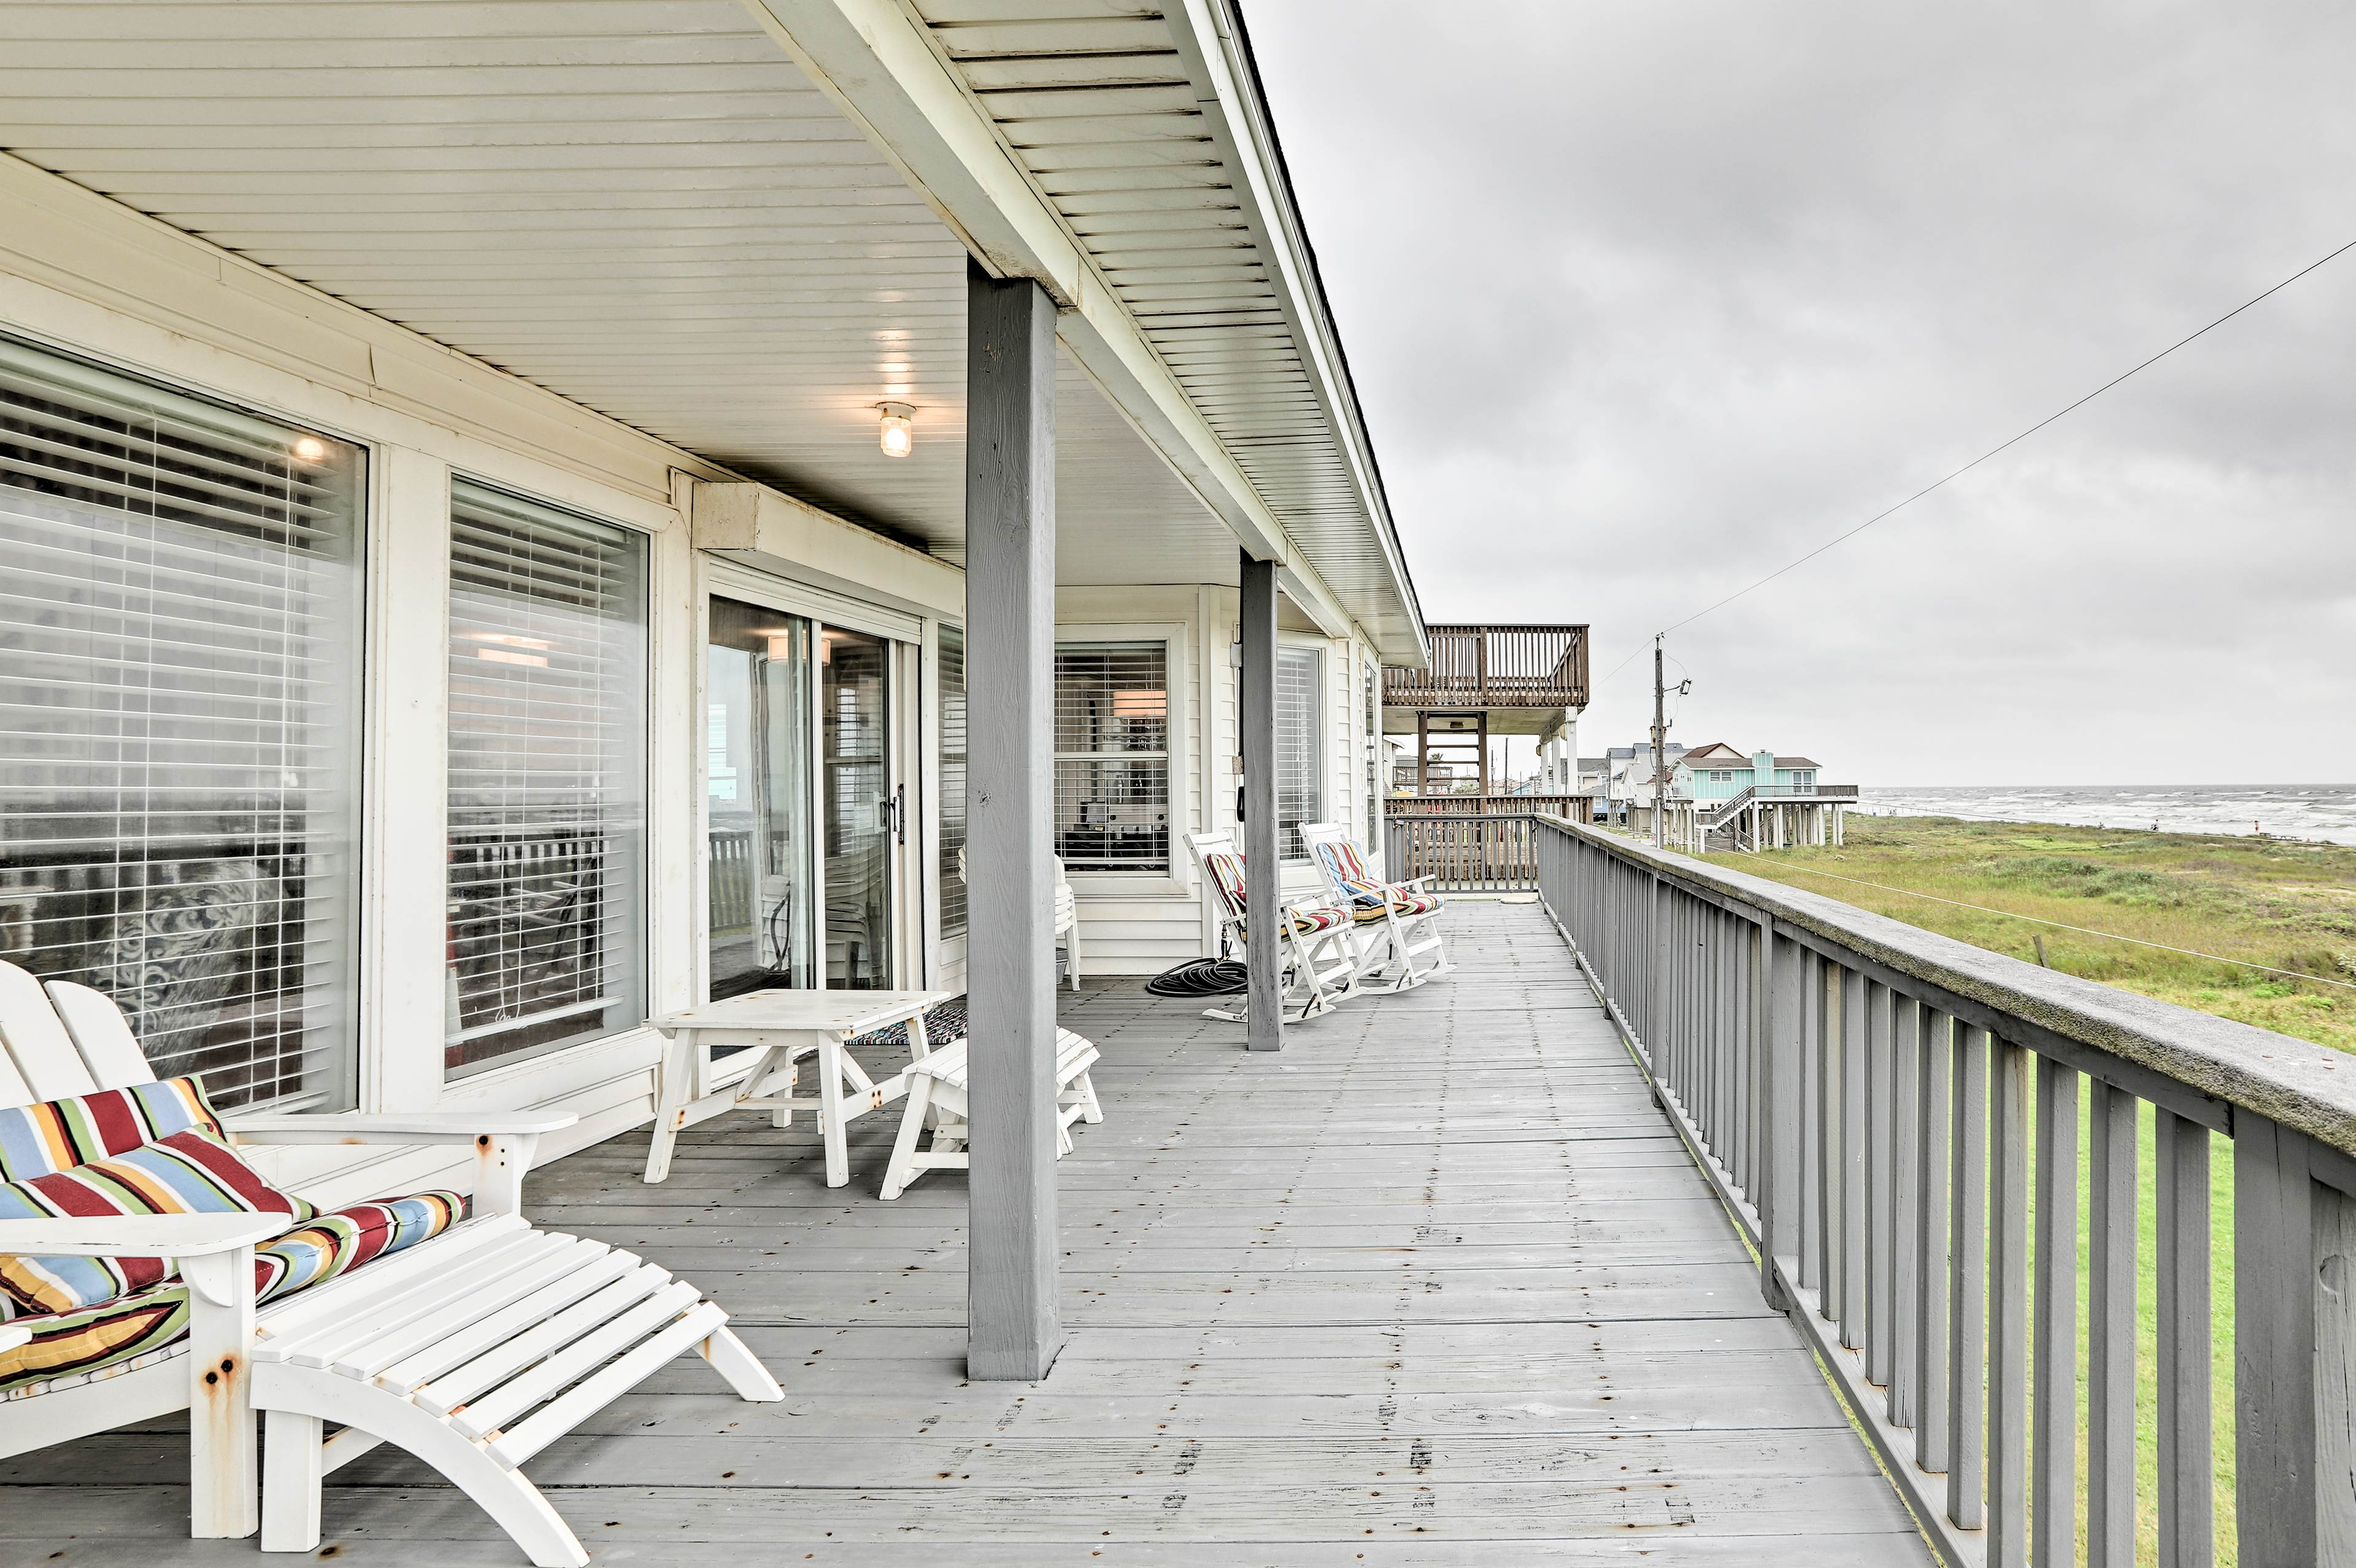 Prepare for a great time at this beachfront Galveston vacation rental!